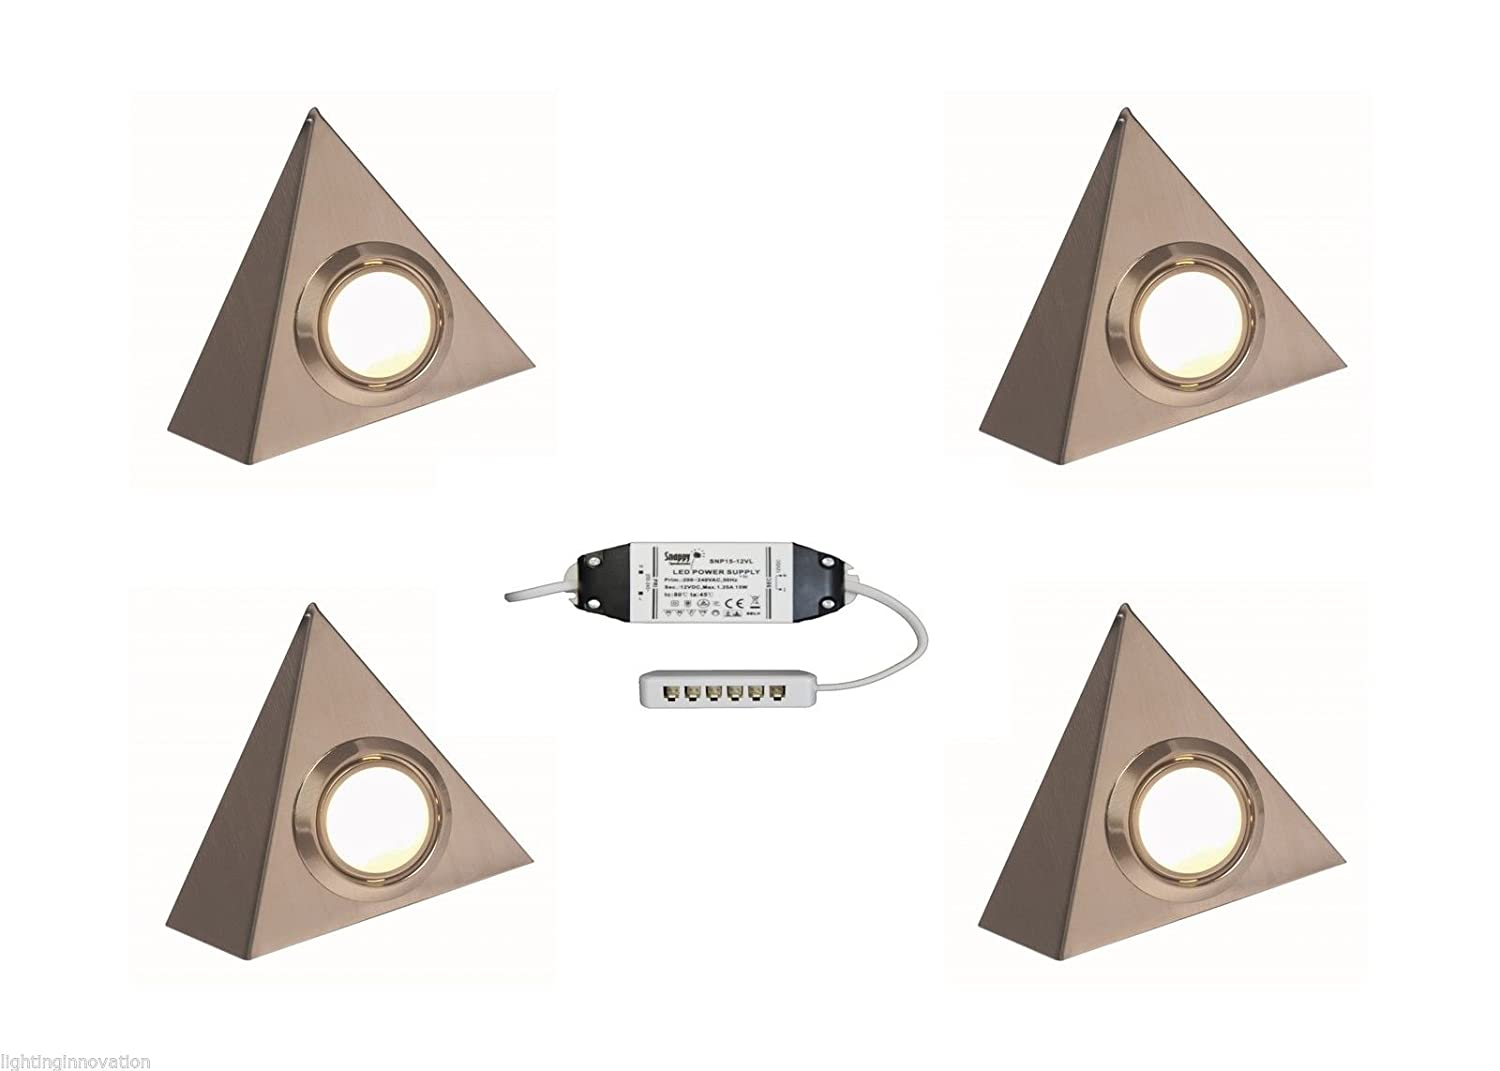 4 x LED TRIANGLE UNDER CABINET KITCHEN CUPBOARD LIGHT COOL WHITE BRUSHED CHROME Lighting Innovations